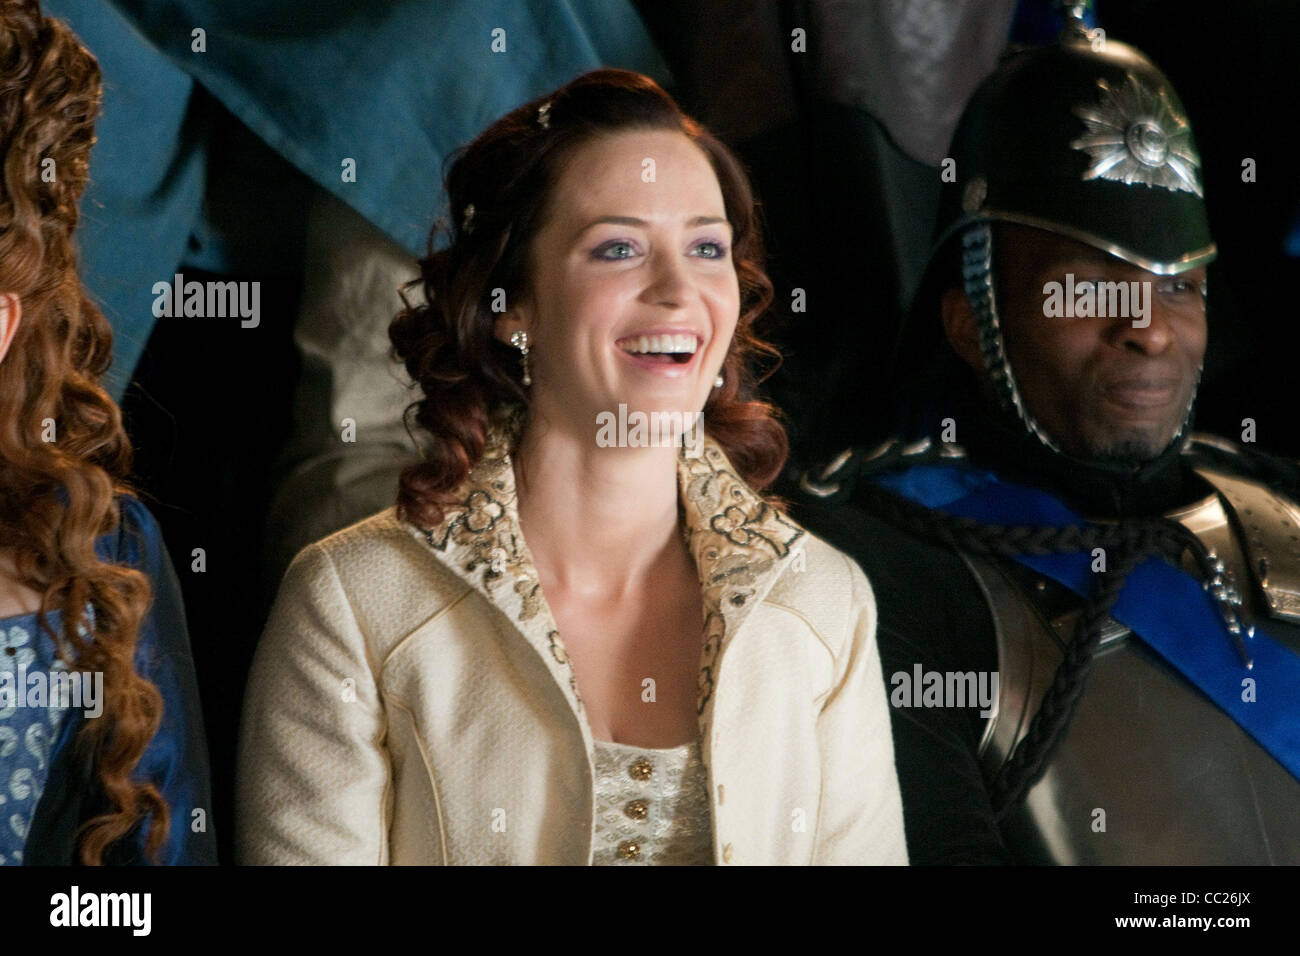 EMILY BLUNT GULLIVER'S TRAVELS (2010) - Stock Image